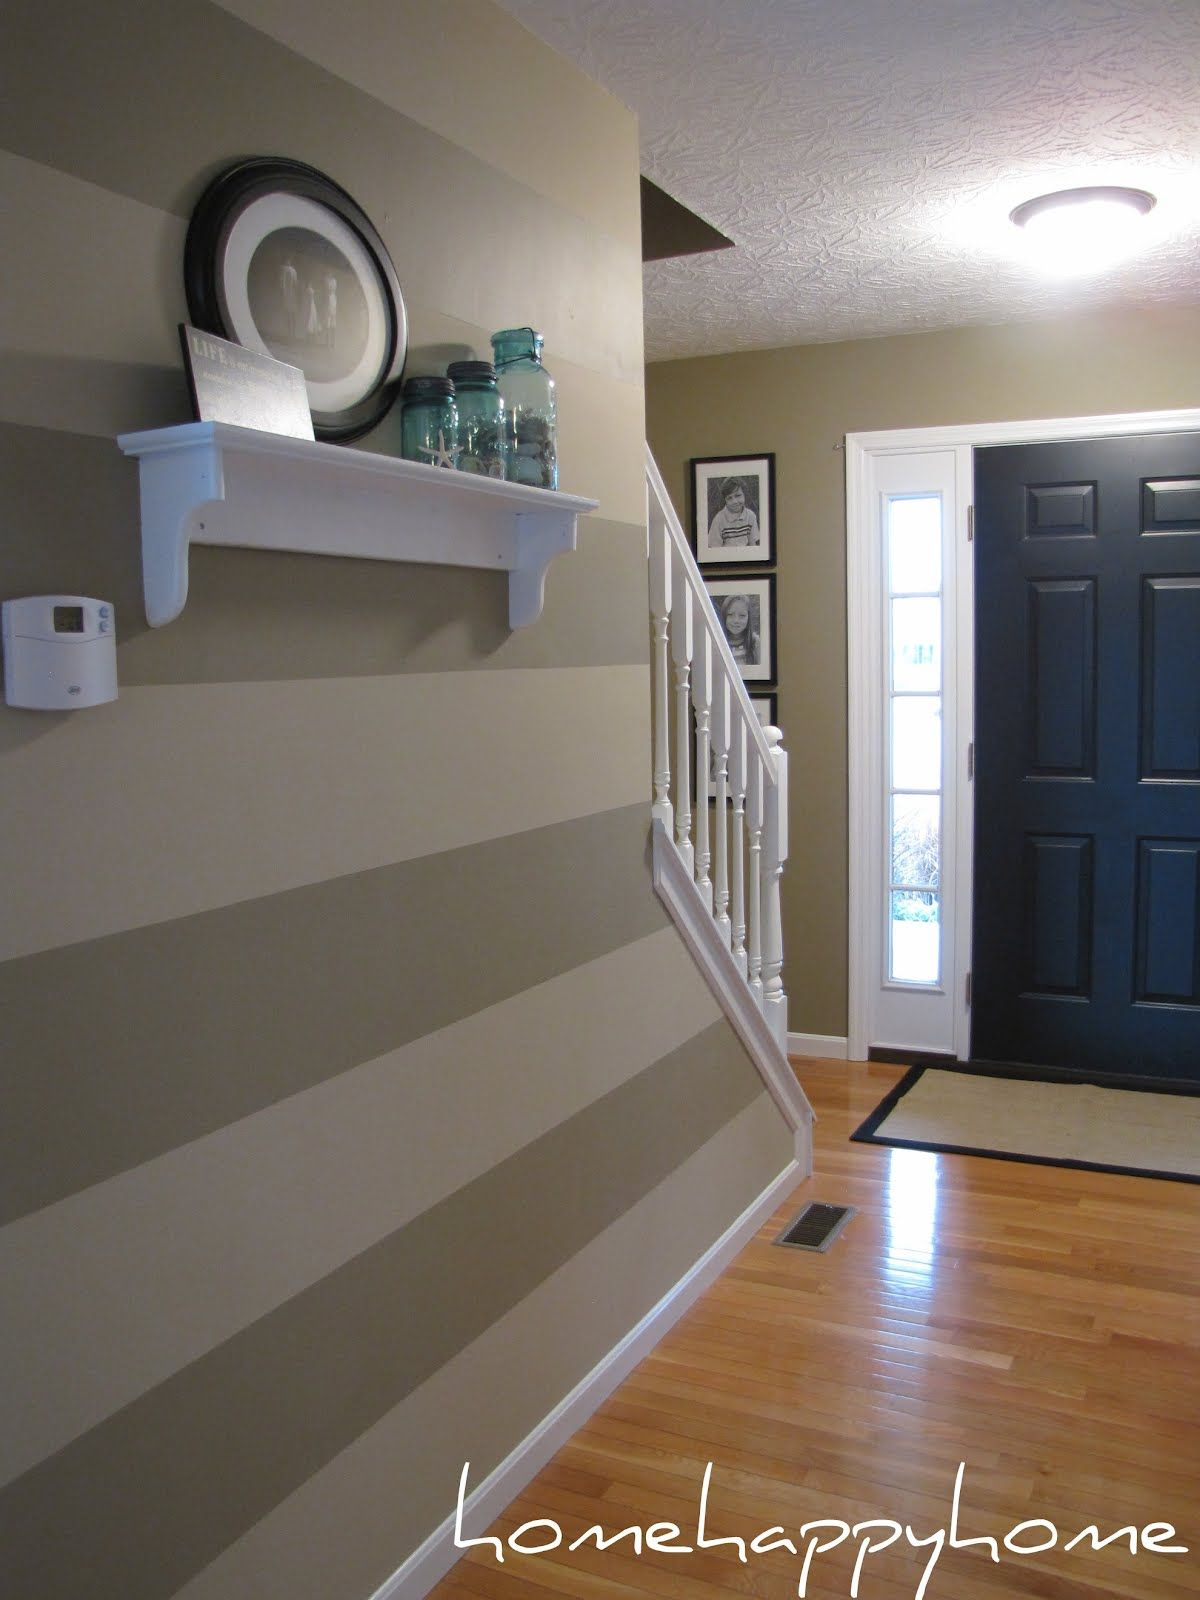 Valspar Barnwood And Valspar Khaki Stripe Paint Colors: valspar interior paint colors